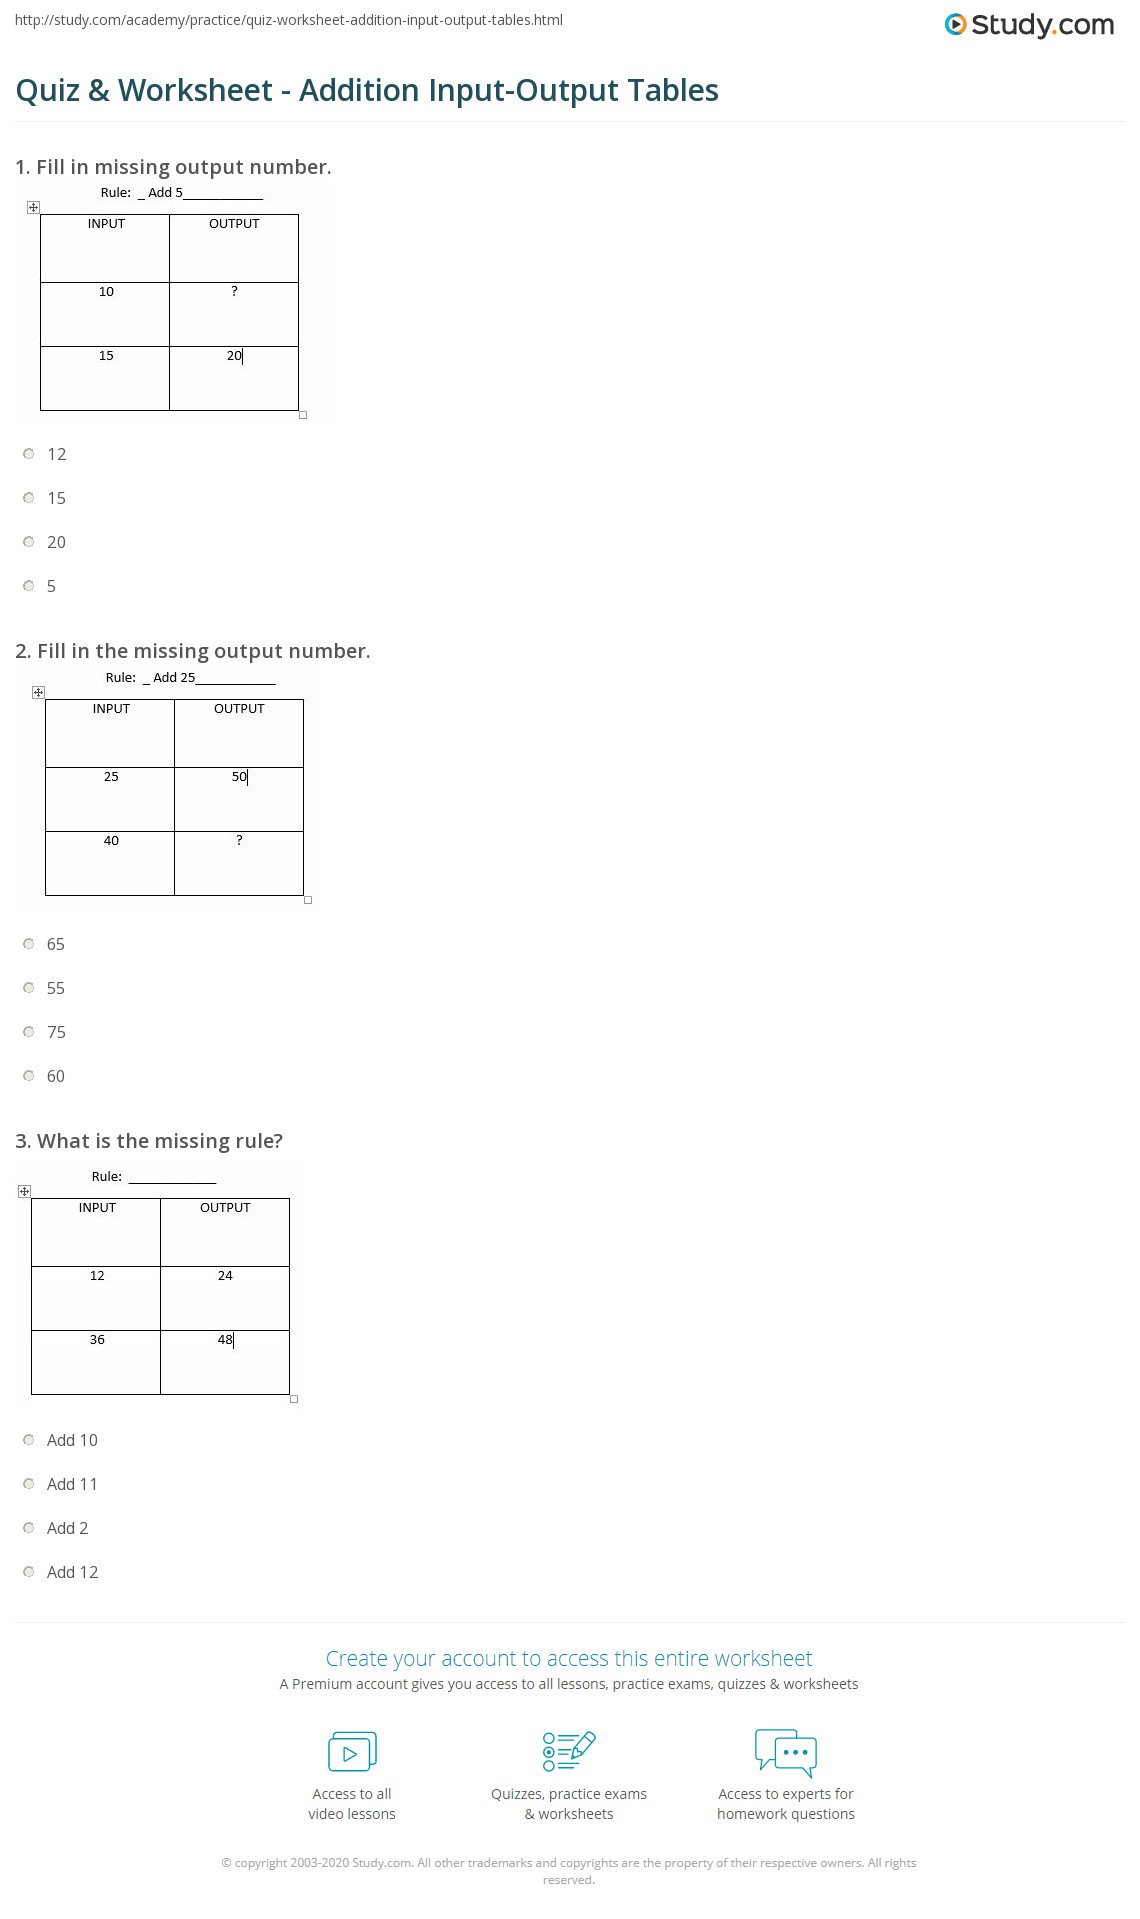 Quiz Worksheet Addition Input Output Tables Study Com